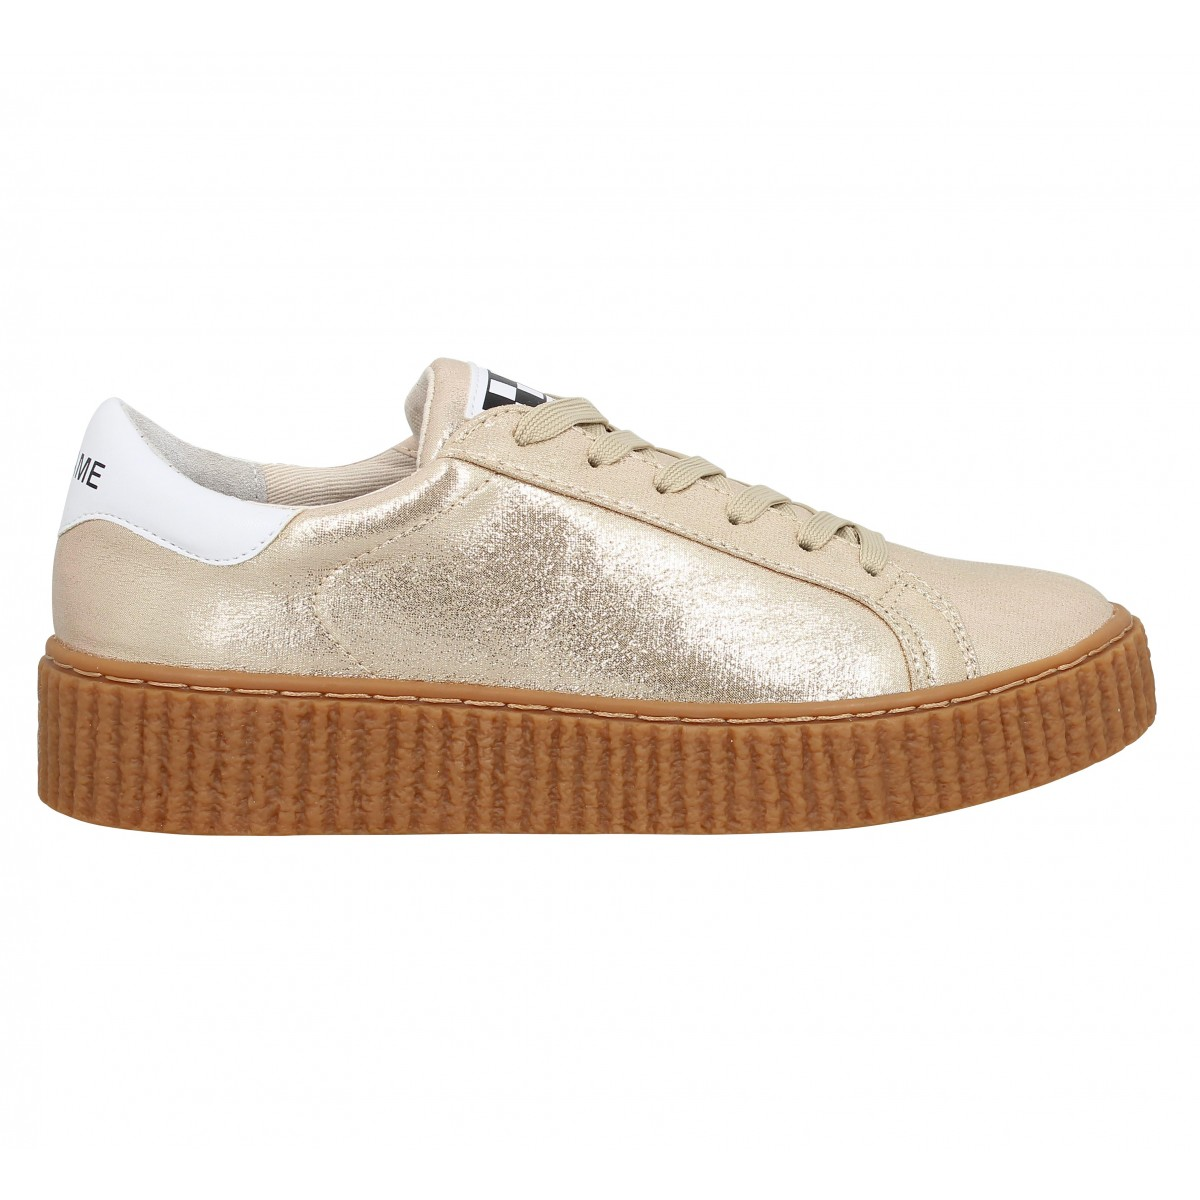 baskets picadilly sneaker femme no name picadilly sneaker aYignAZ